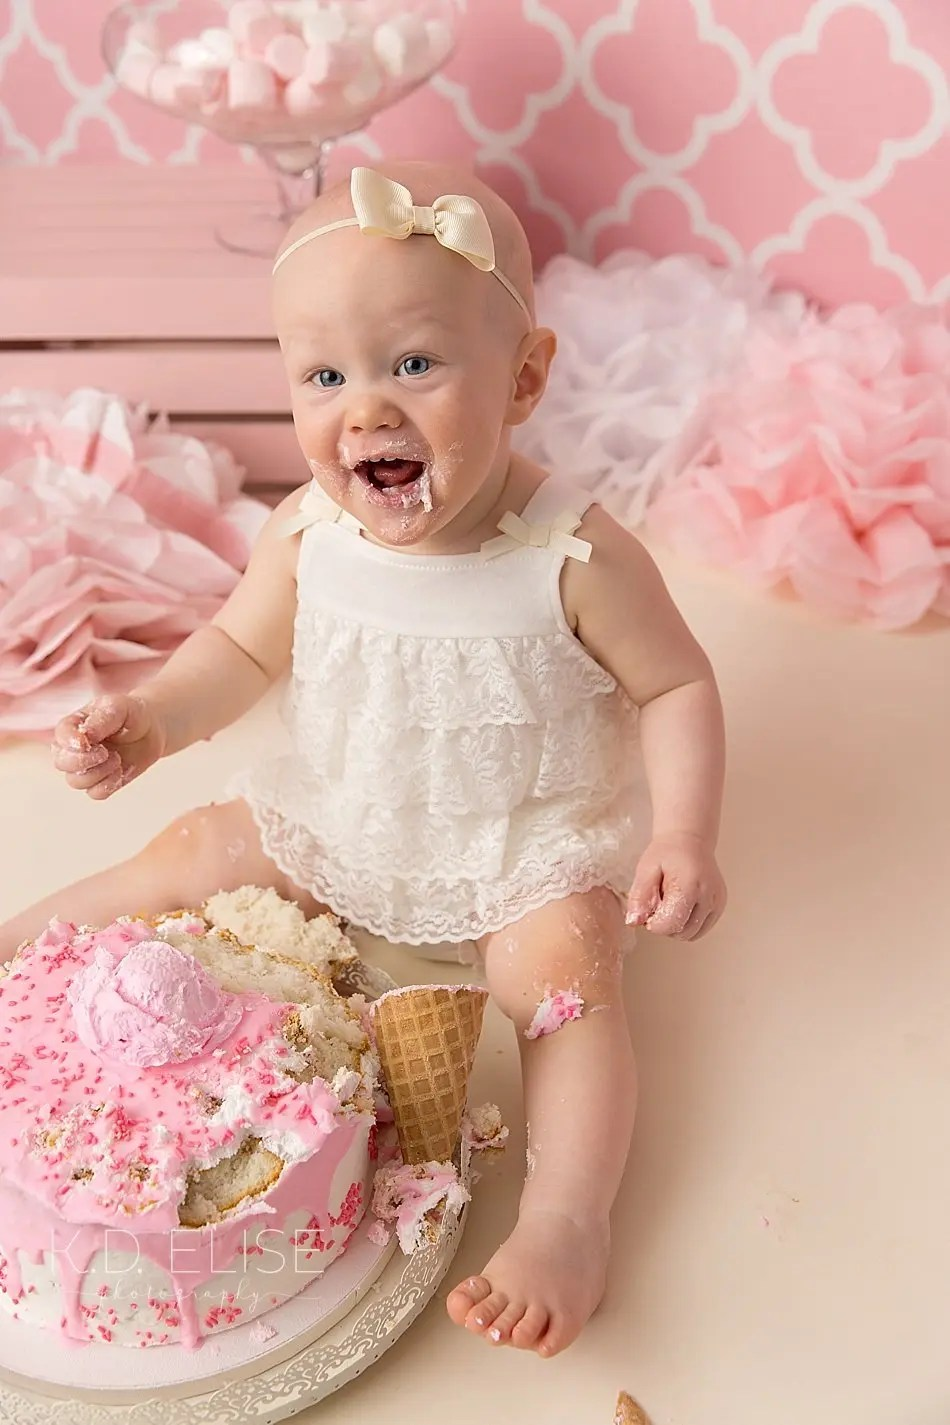 Baby girl smiles while eating cake during candy themed cake smash with Colorado Springs photographer K.D. Elise Photography.